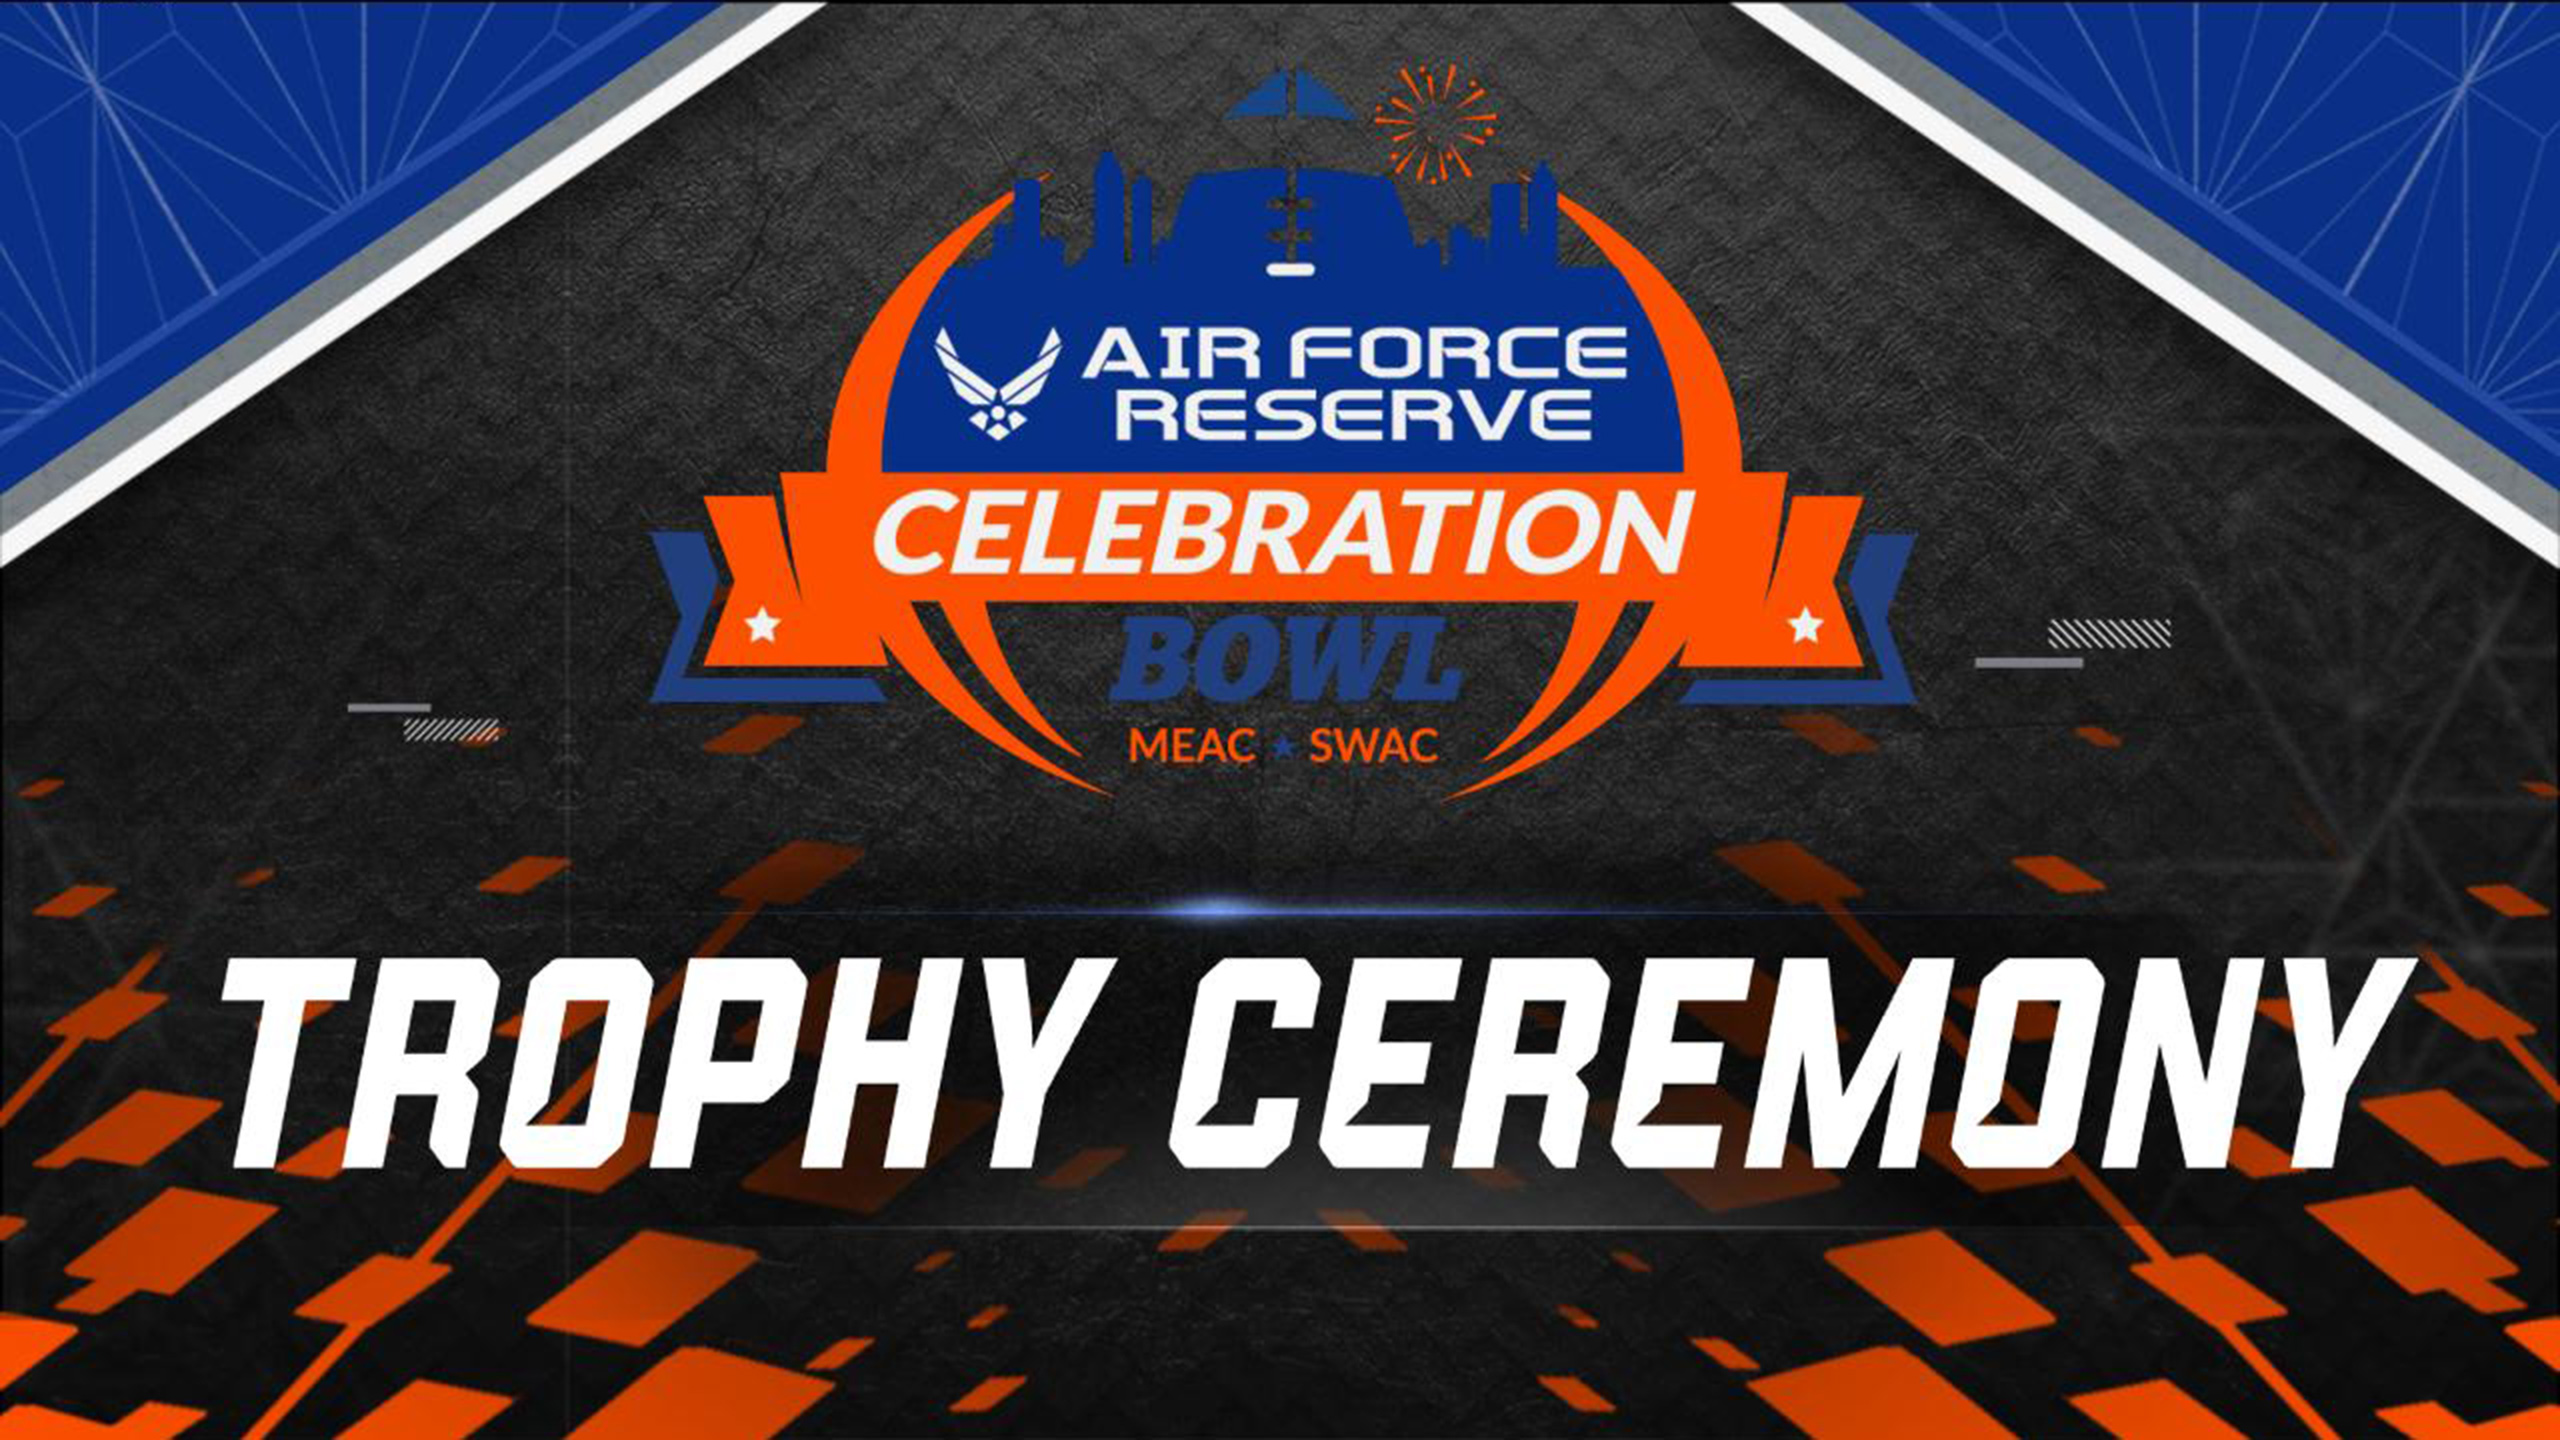 Air Force Reserve Celebration Bowl Trophy Ceremony Presented by Capital One